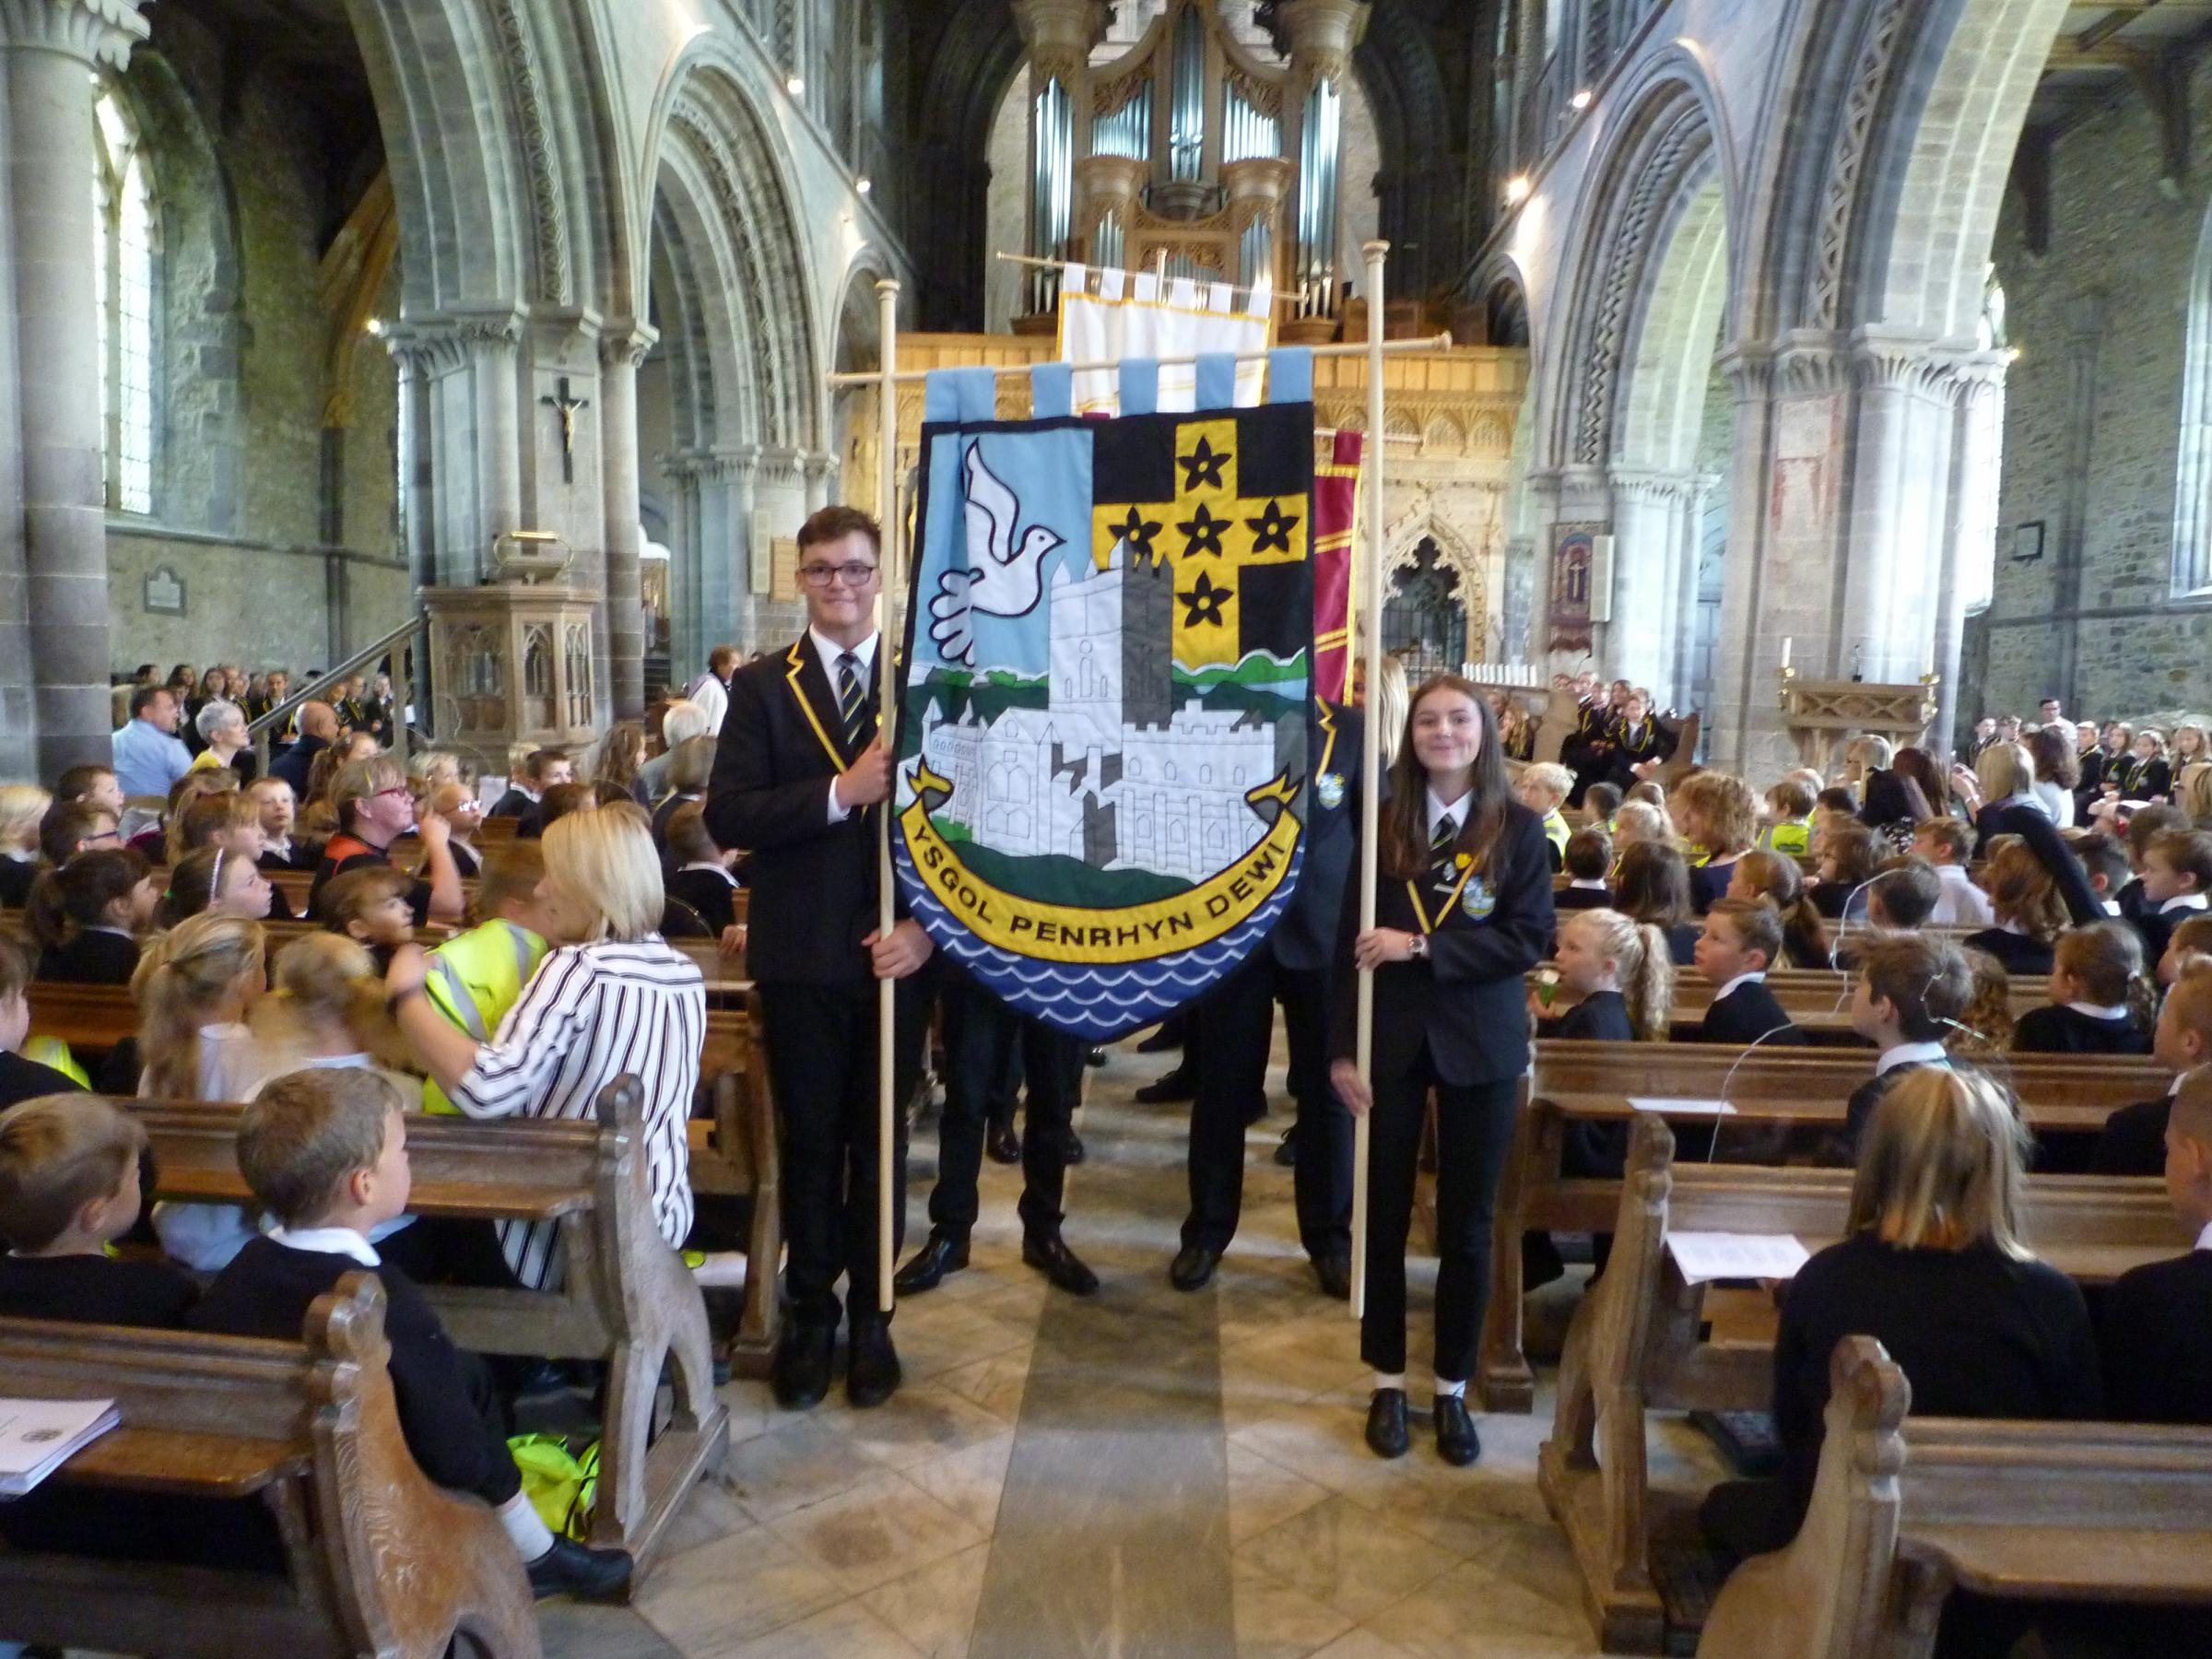 St Davids pupils met for the first whole school assembly in the cathedral on Friday. PICTURE: Western Telegraph